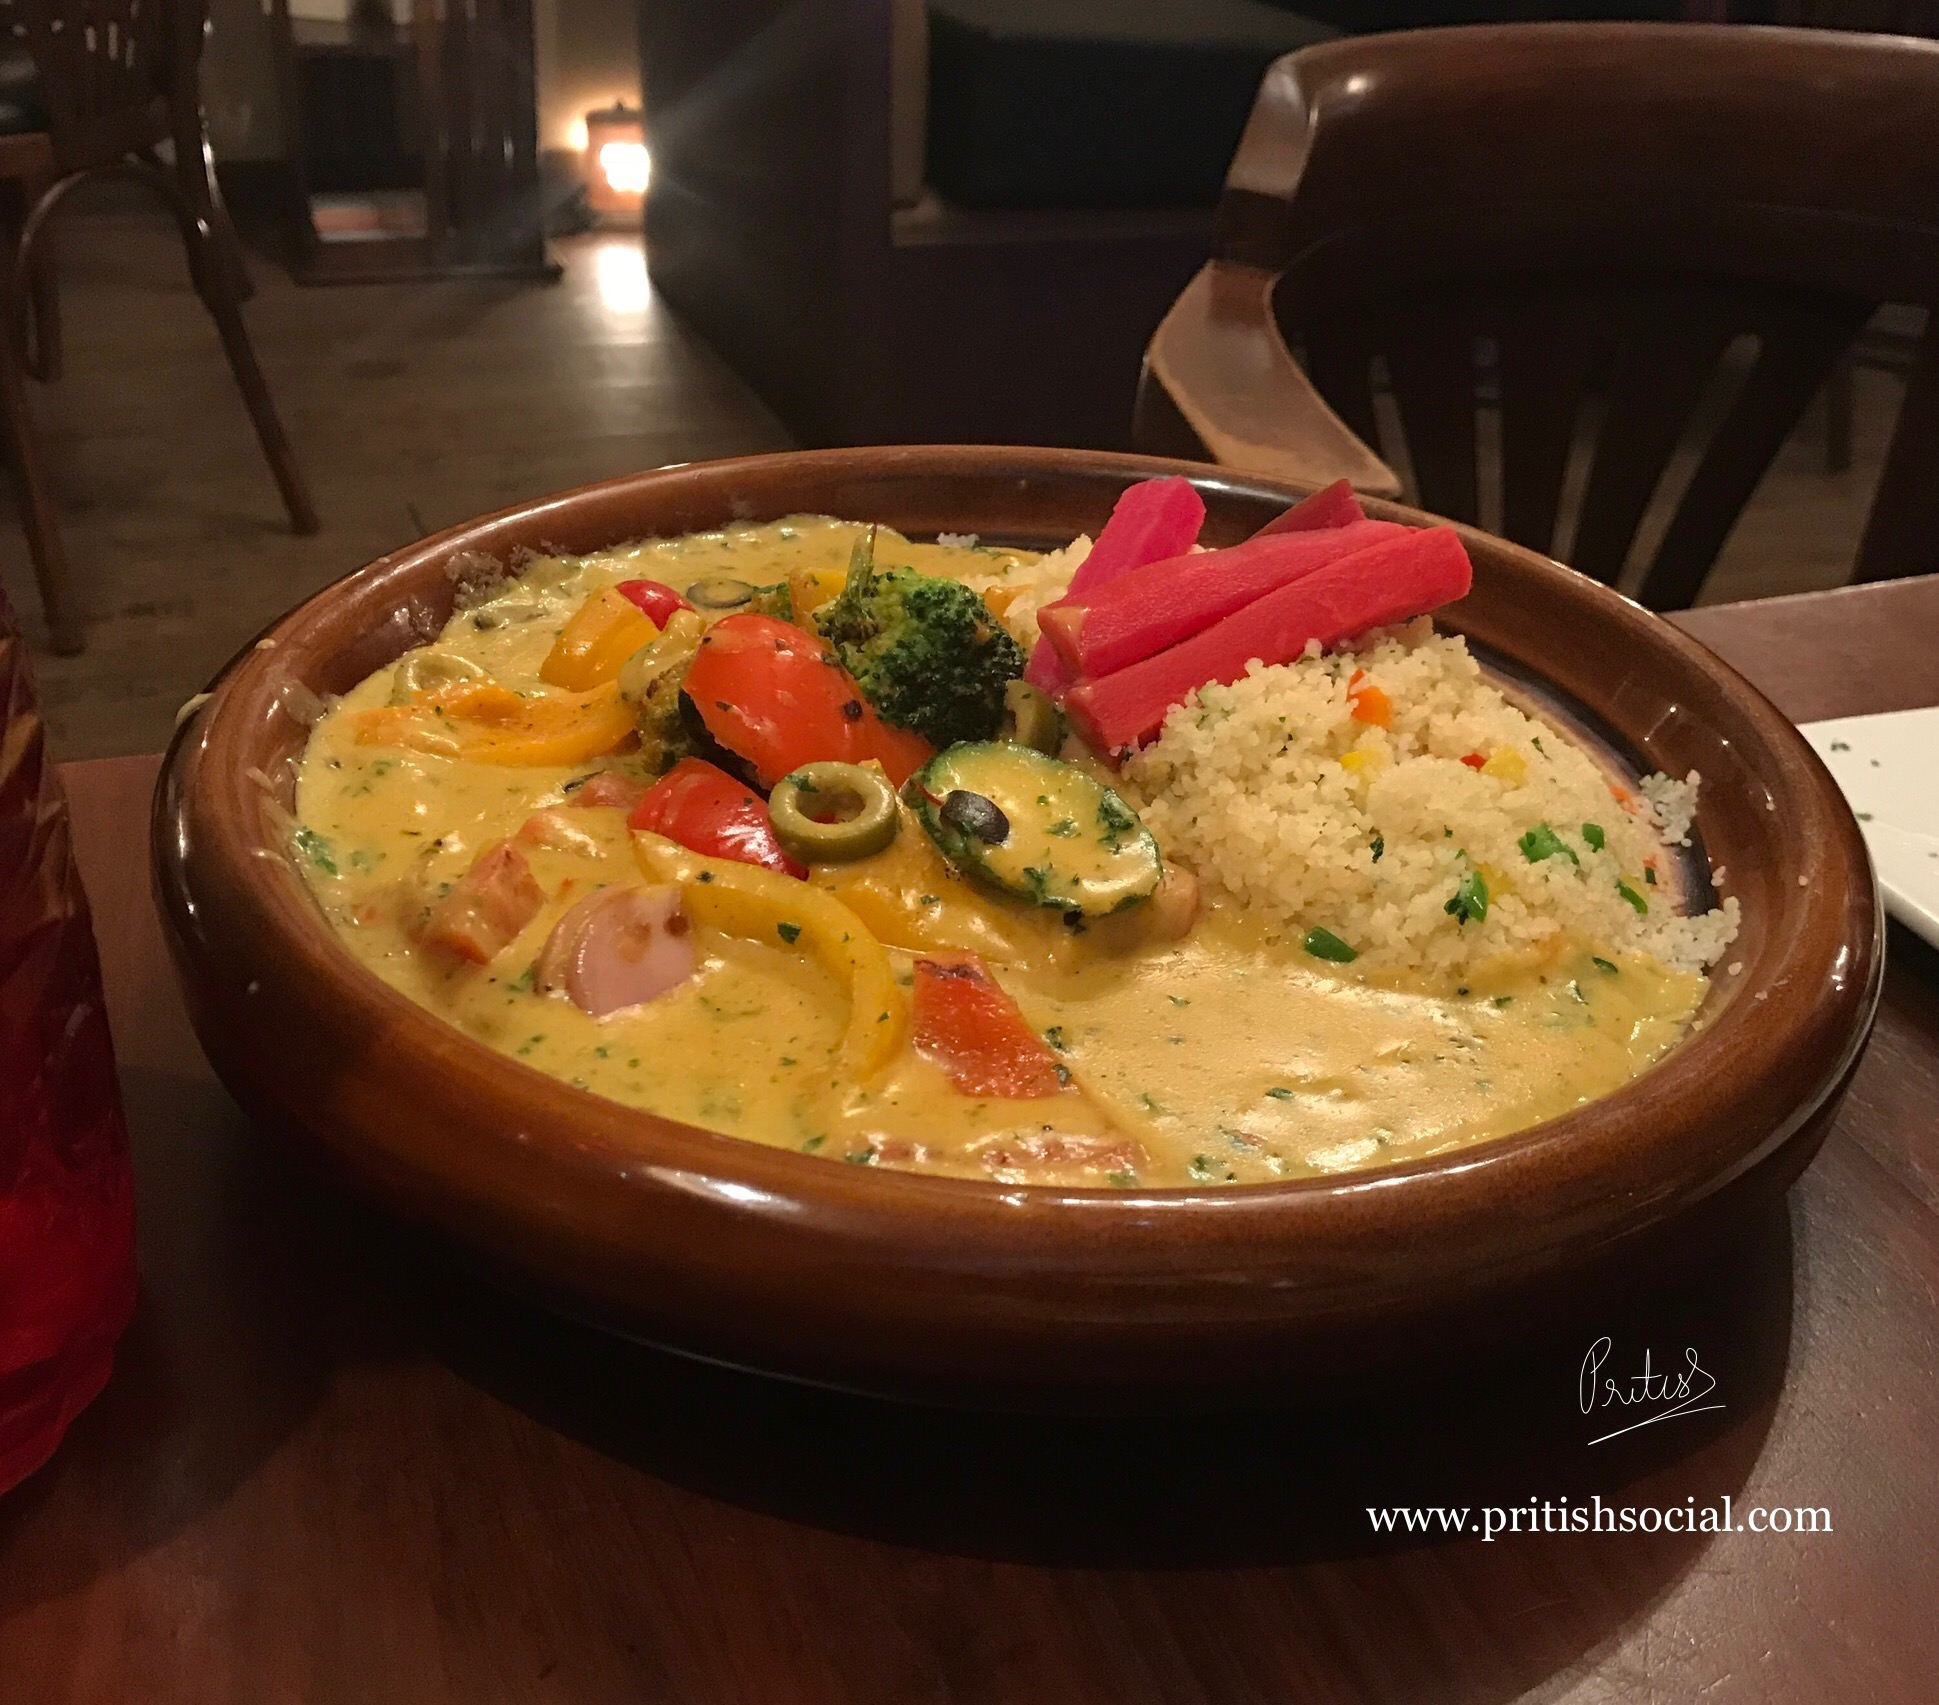 Café Nomad Chandigarh | Best Middle Eastern Restaurant | Casablanca Cous Cous with Roasted Summer Vegetables Tangine 1 | Food Blog | PritishSocial